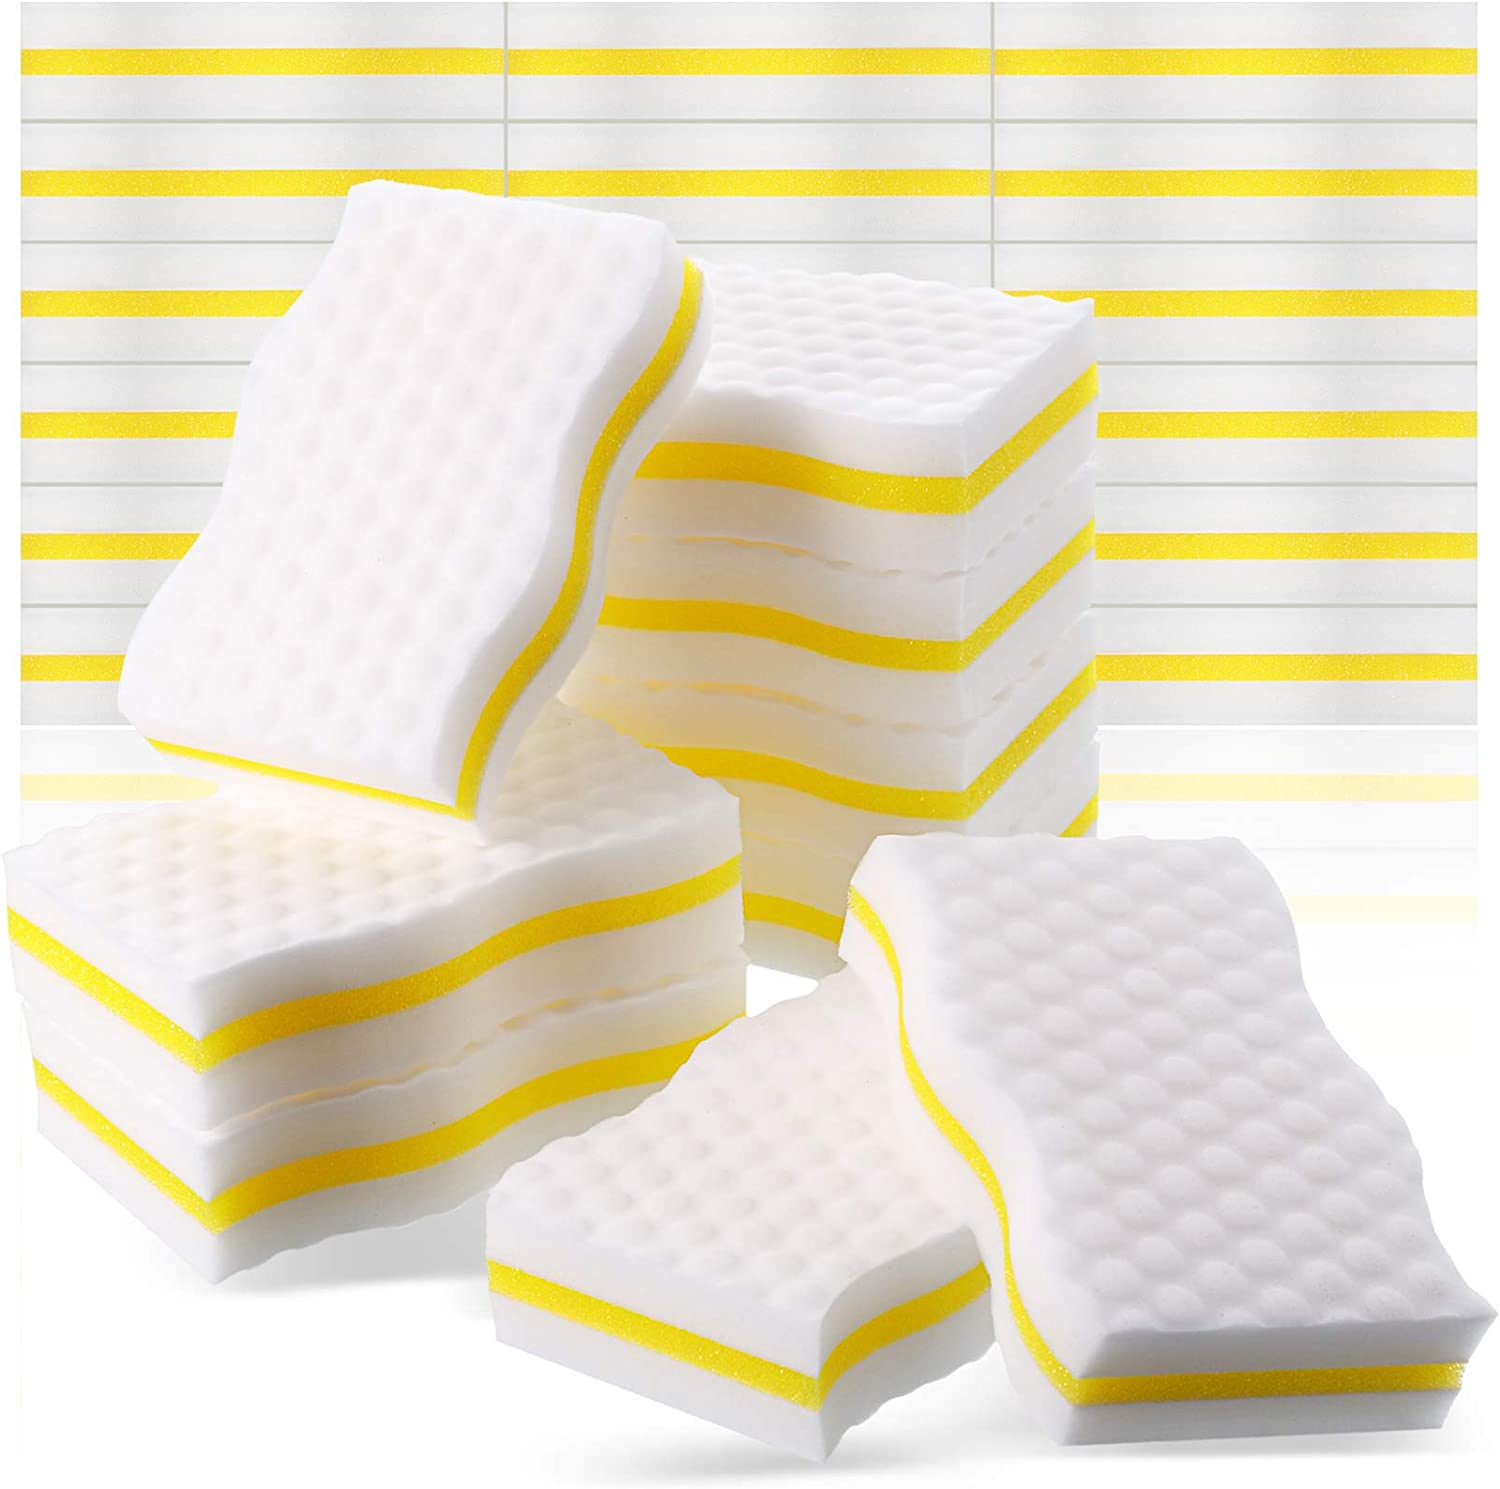 25 Pieces Boat Scuff Sponge Boat Scuff Eraser Boat Magic Cleaning Eraser Accessories for Cleaning Black Streak Deck Marks Scuffs (White and Yellow)